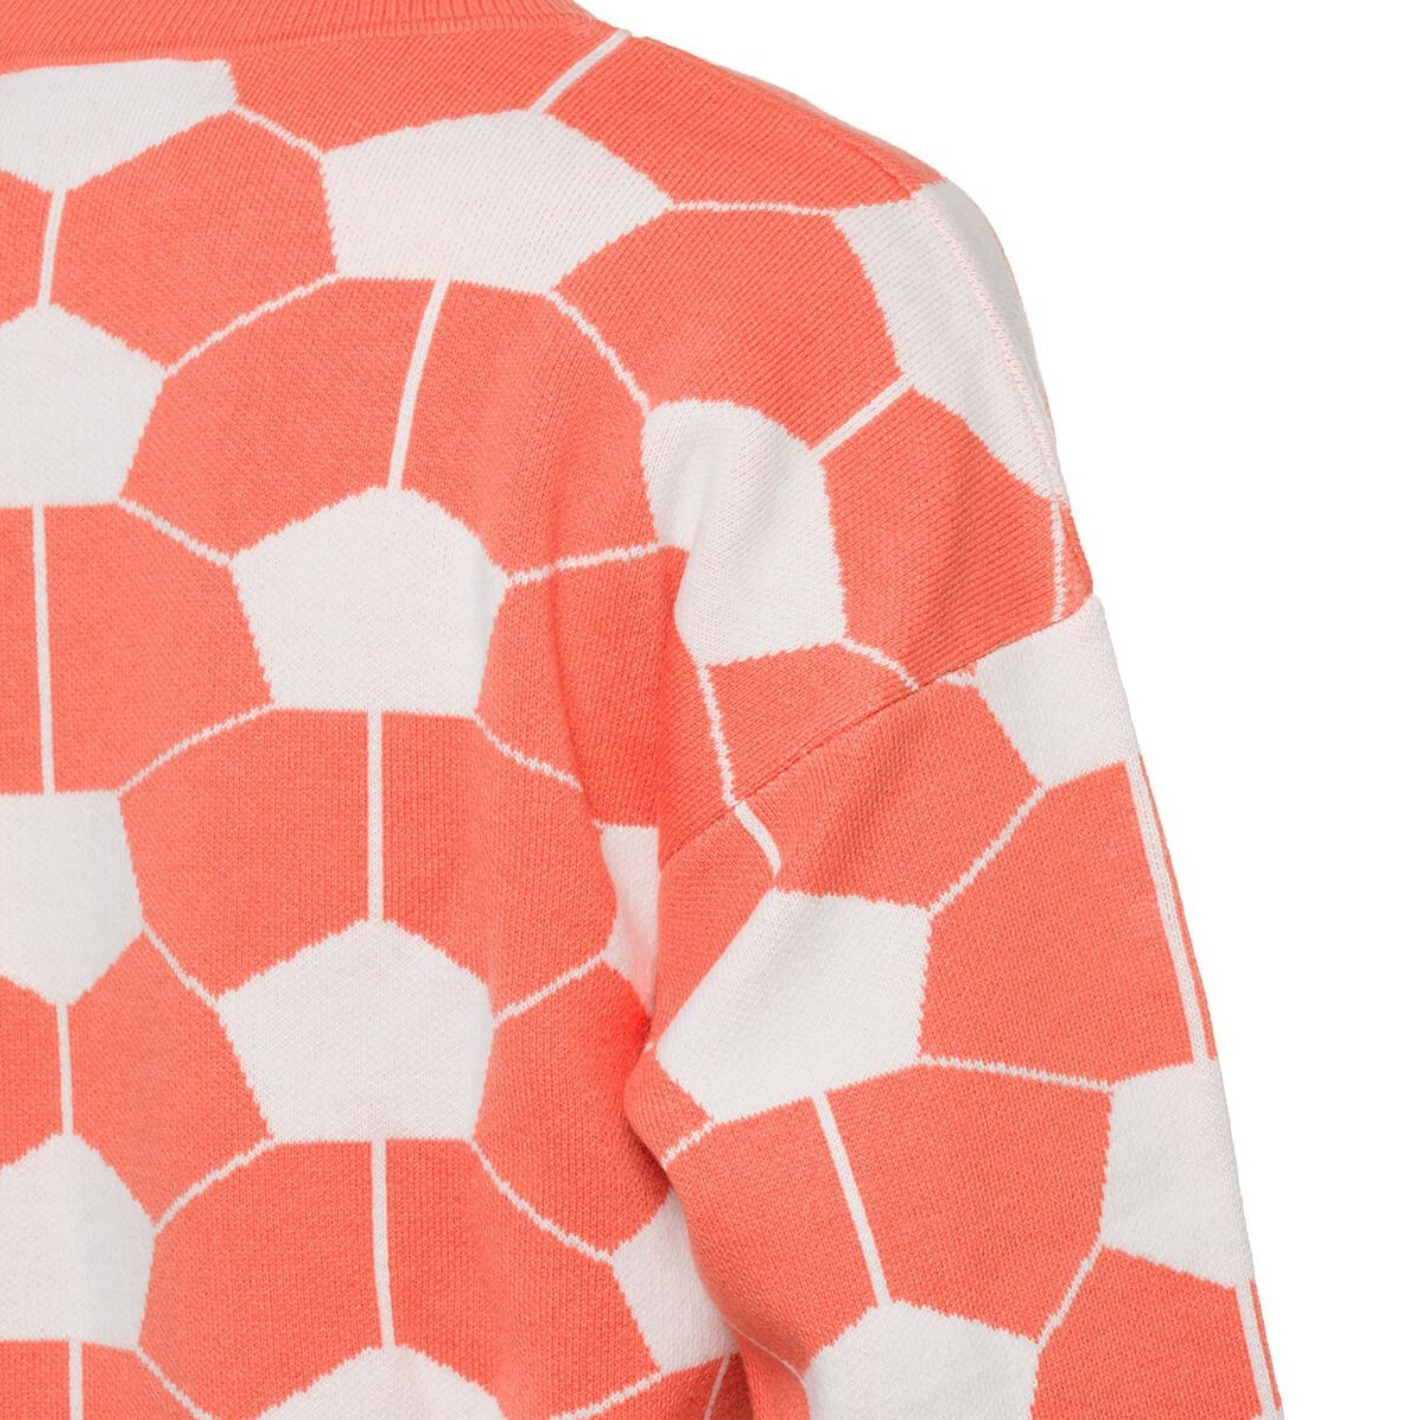 Gosha Rubchinskiy Men's Pink Hexagon Sweater